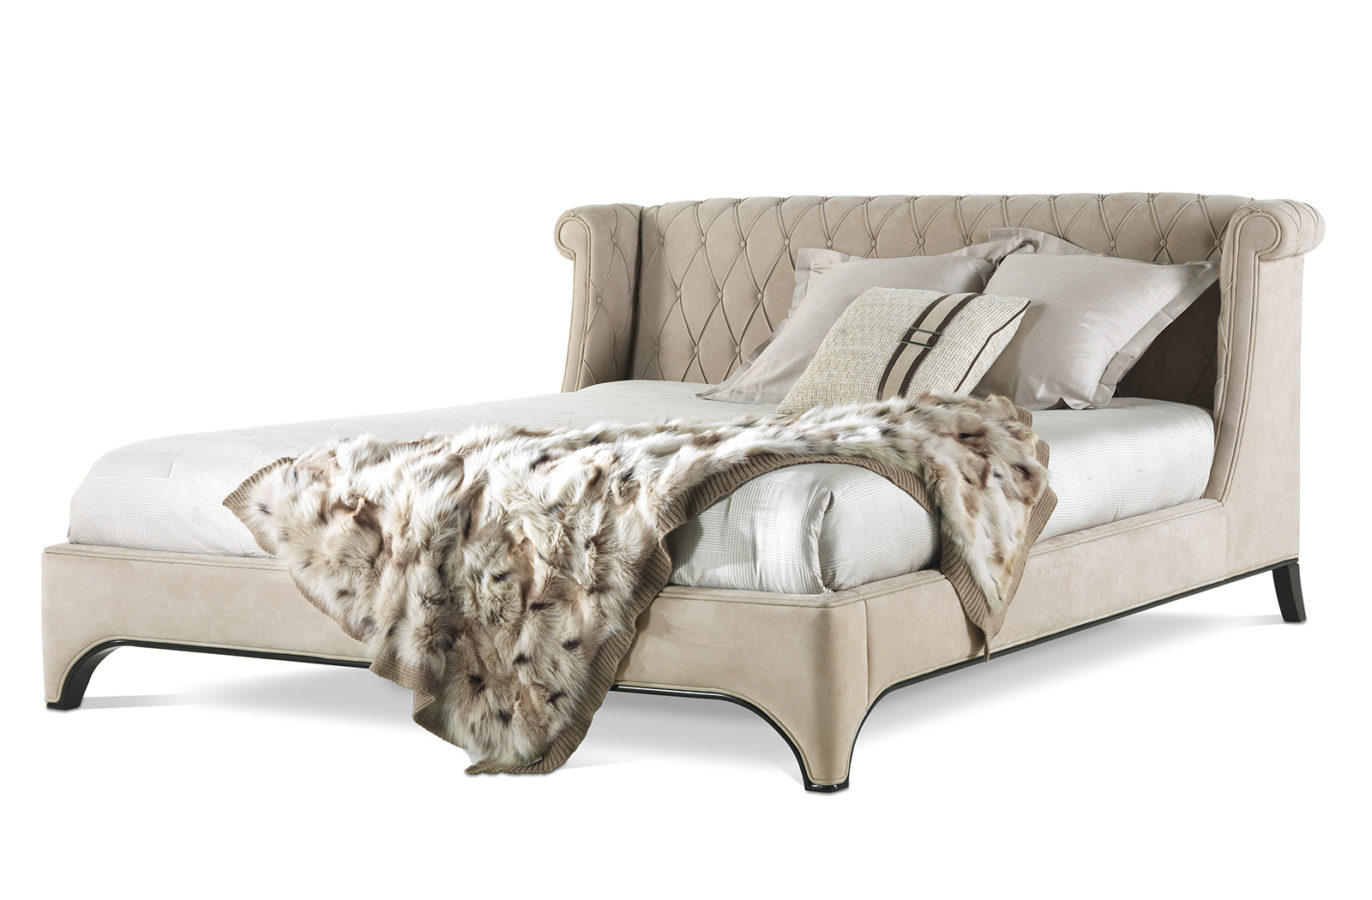 Gianfranco Ferre Home Bradmore Bed